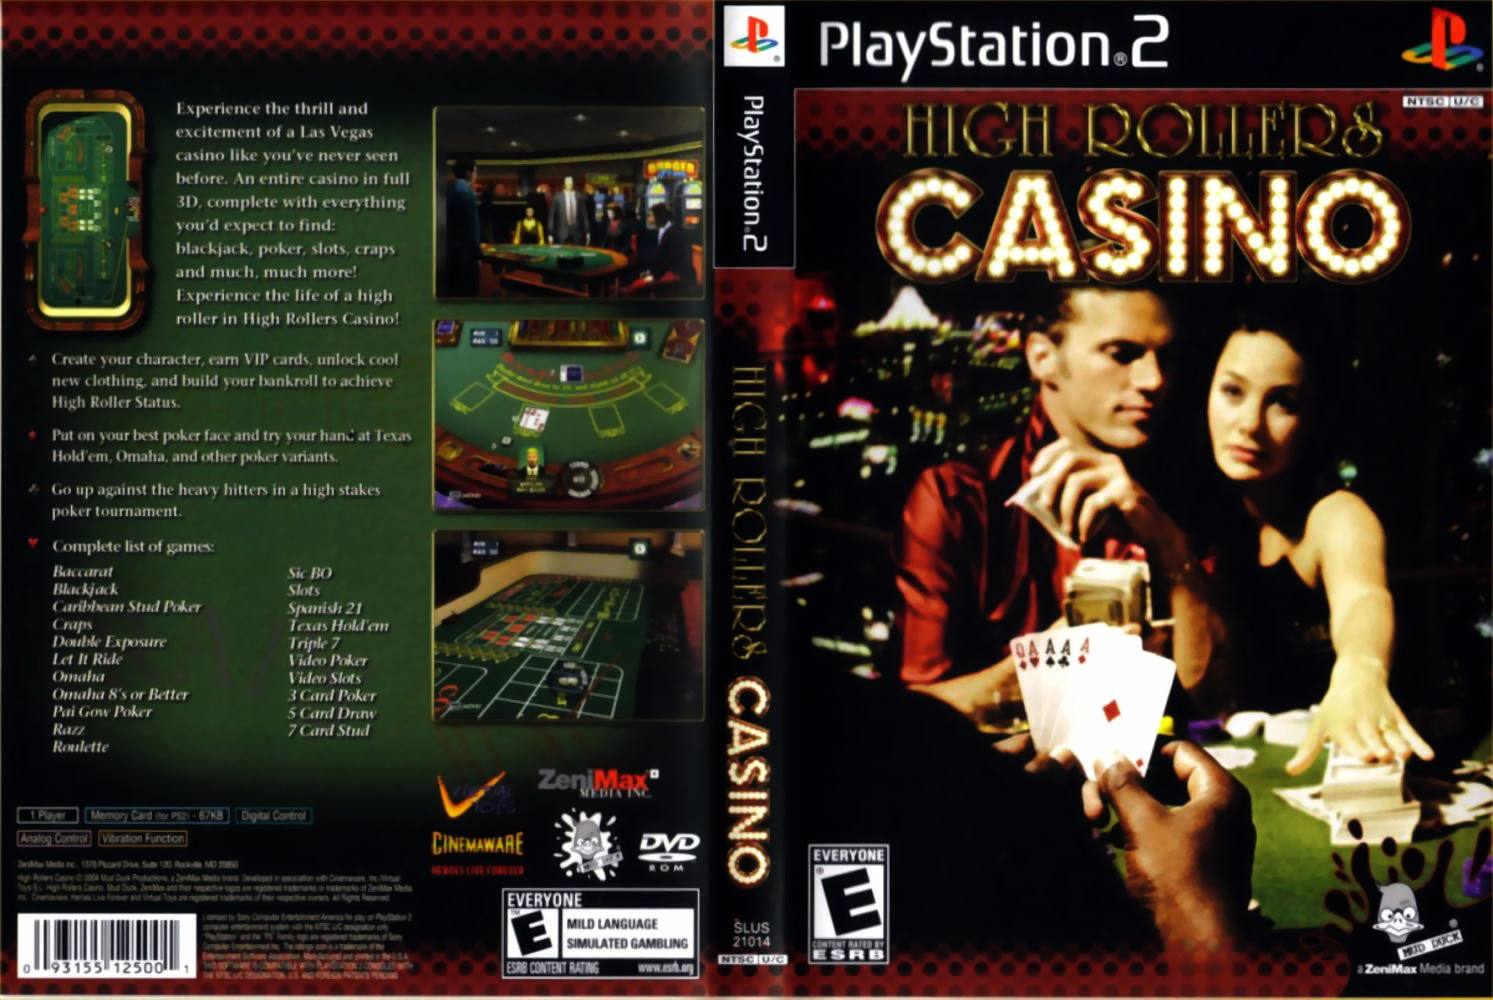 watch casino online free 1995 casino games book of ra